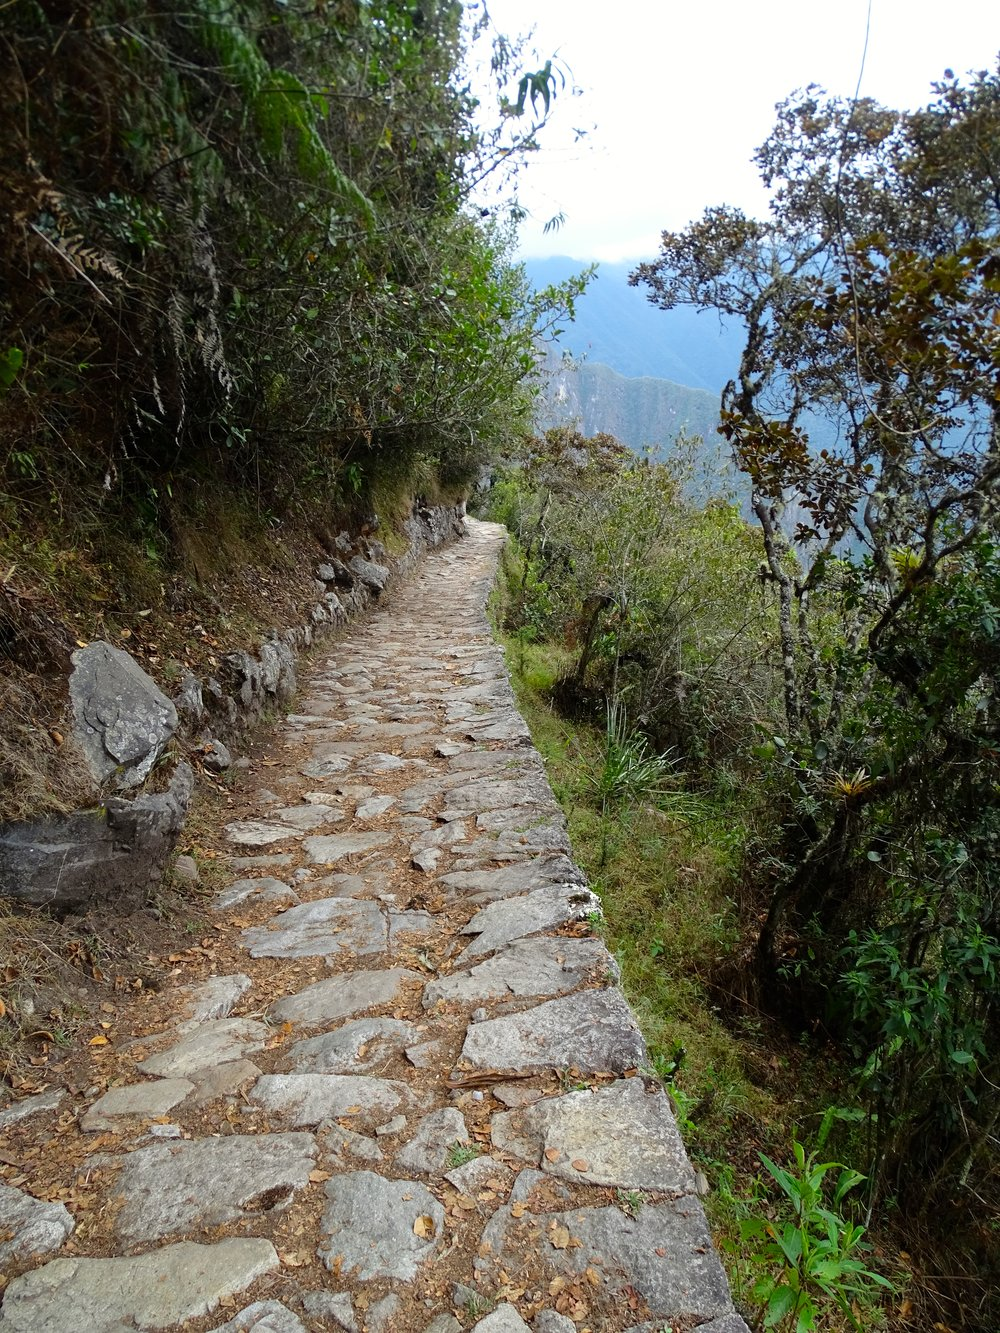 Another view of the Inca Trail, and how well built it is.